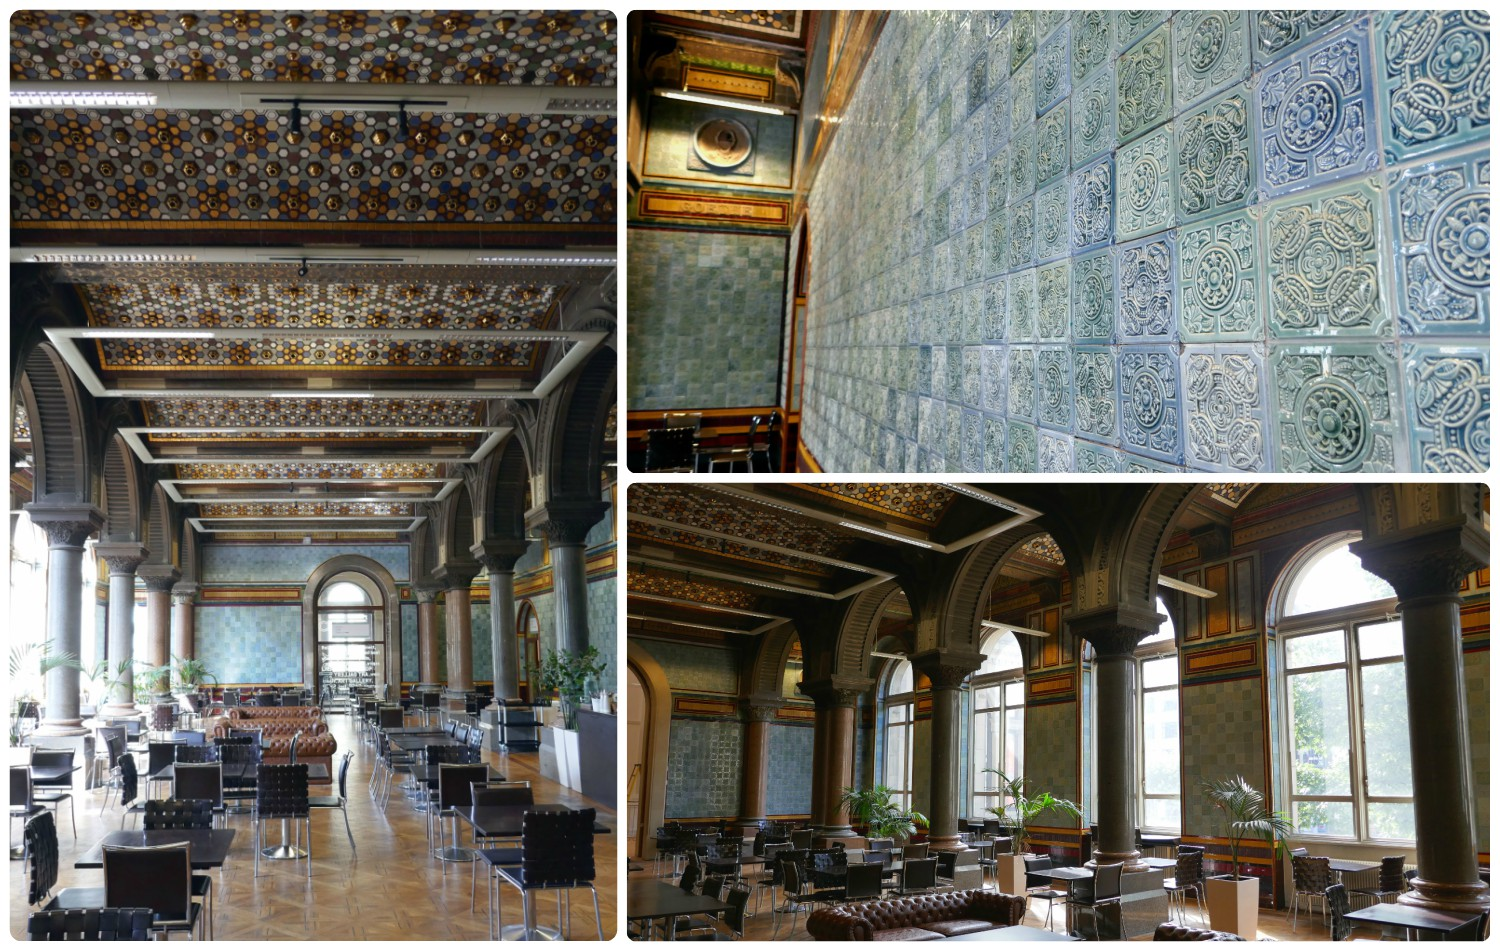 The tiled cafe within the Leeds Art Gallery is worth a visit on its own merit!